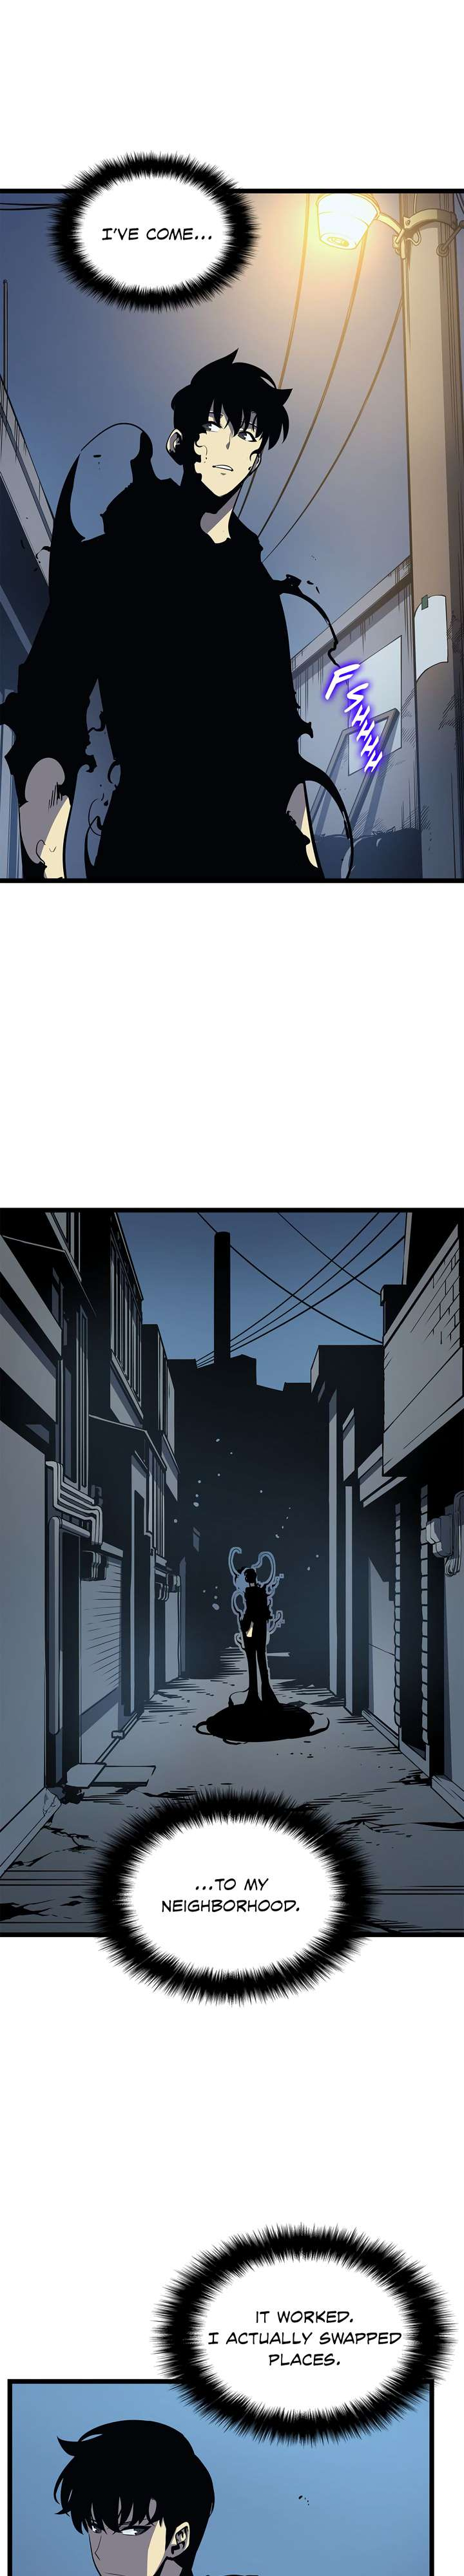 Solo Leveling Chapter 88 Page 18